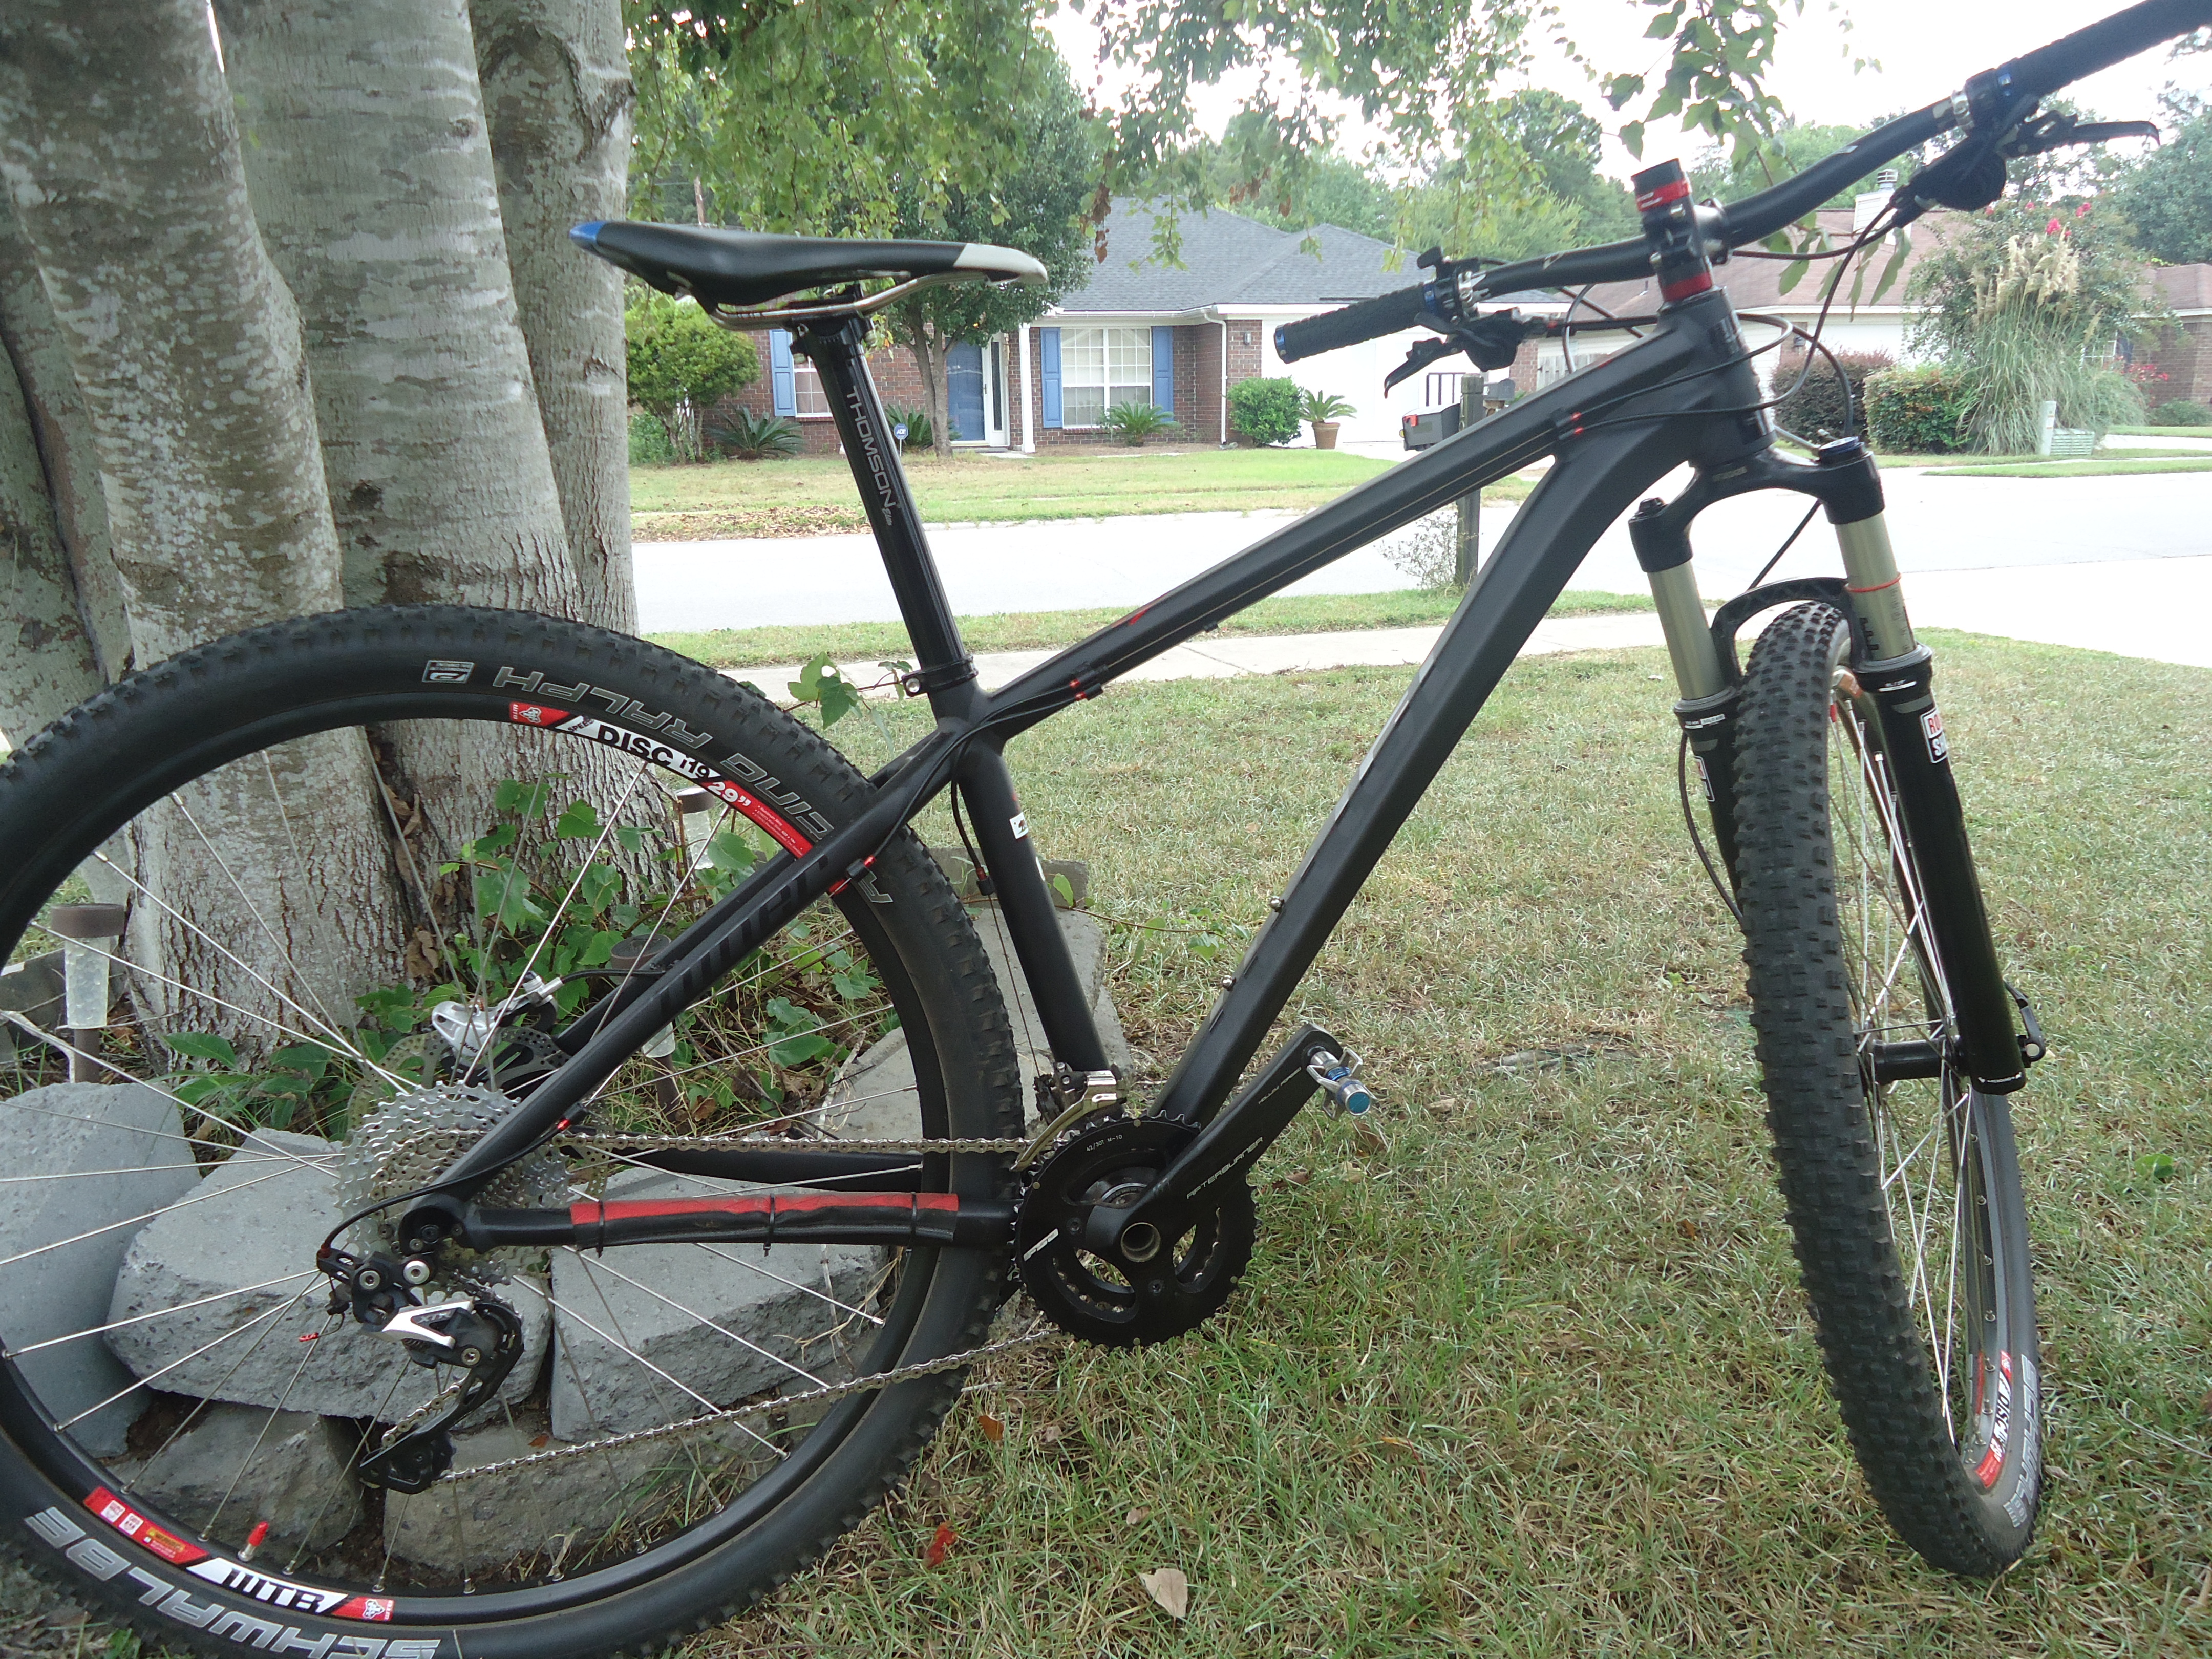 Thoughts from My First Mountain Bike Build